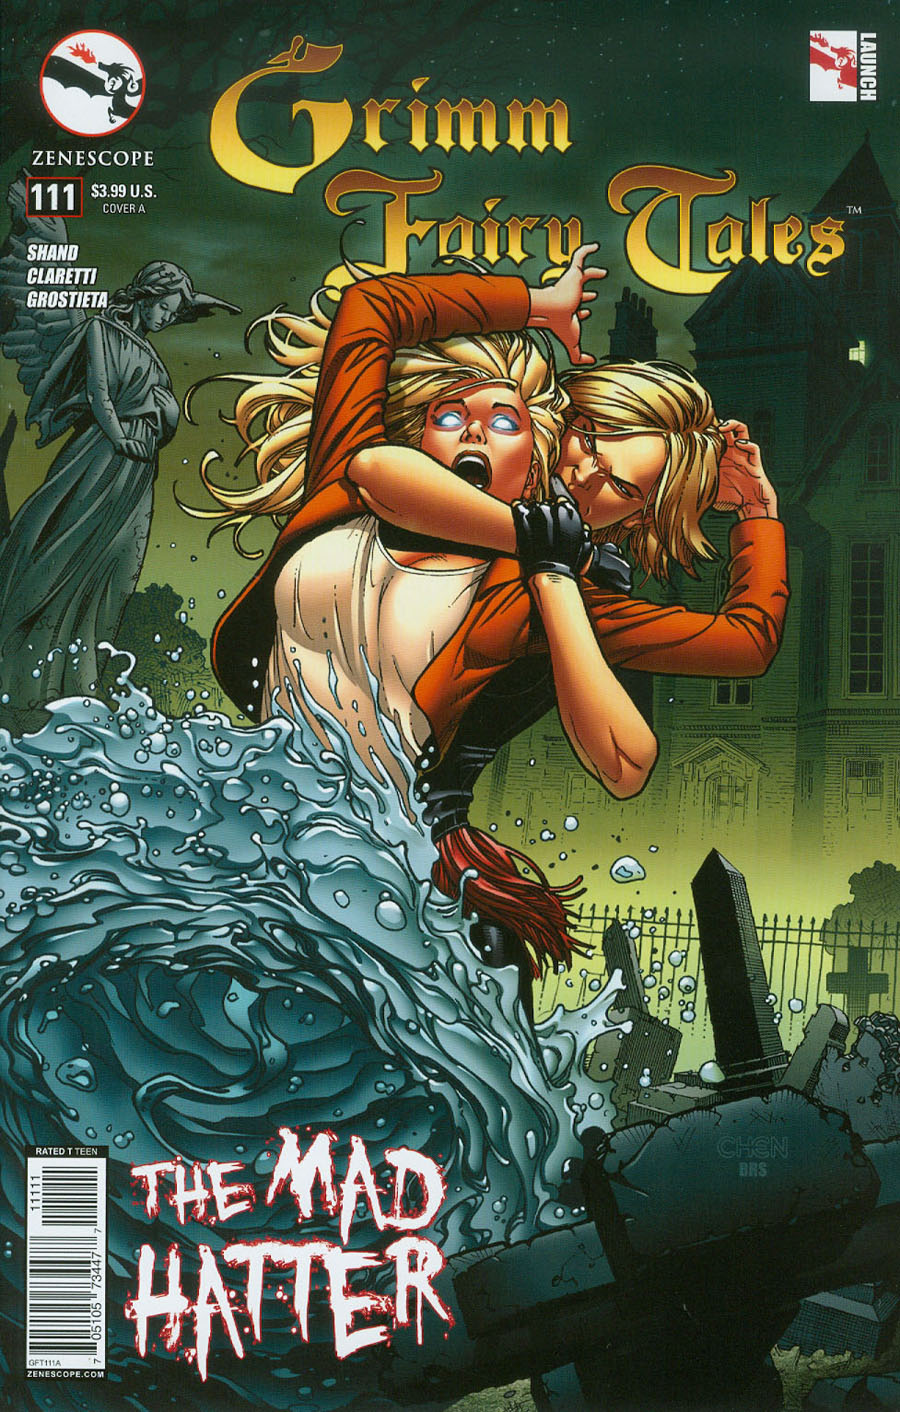 Grimm Fairy Tales #111 Cover A Sean Chen